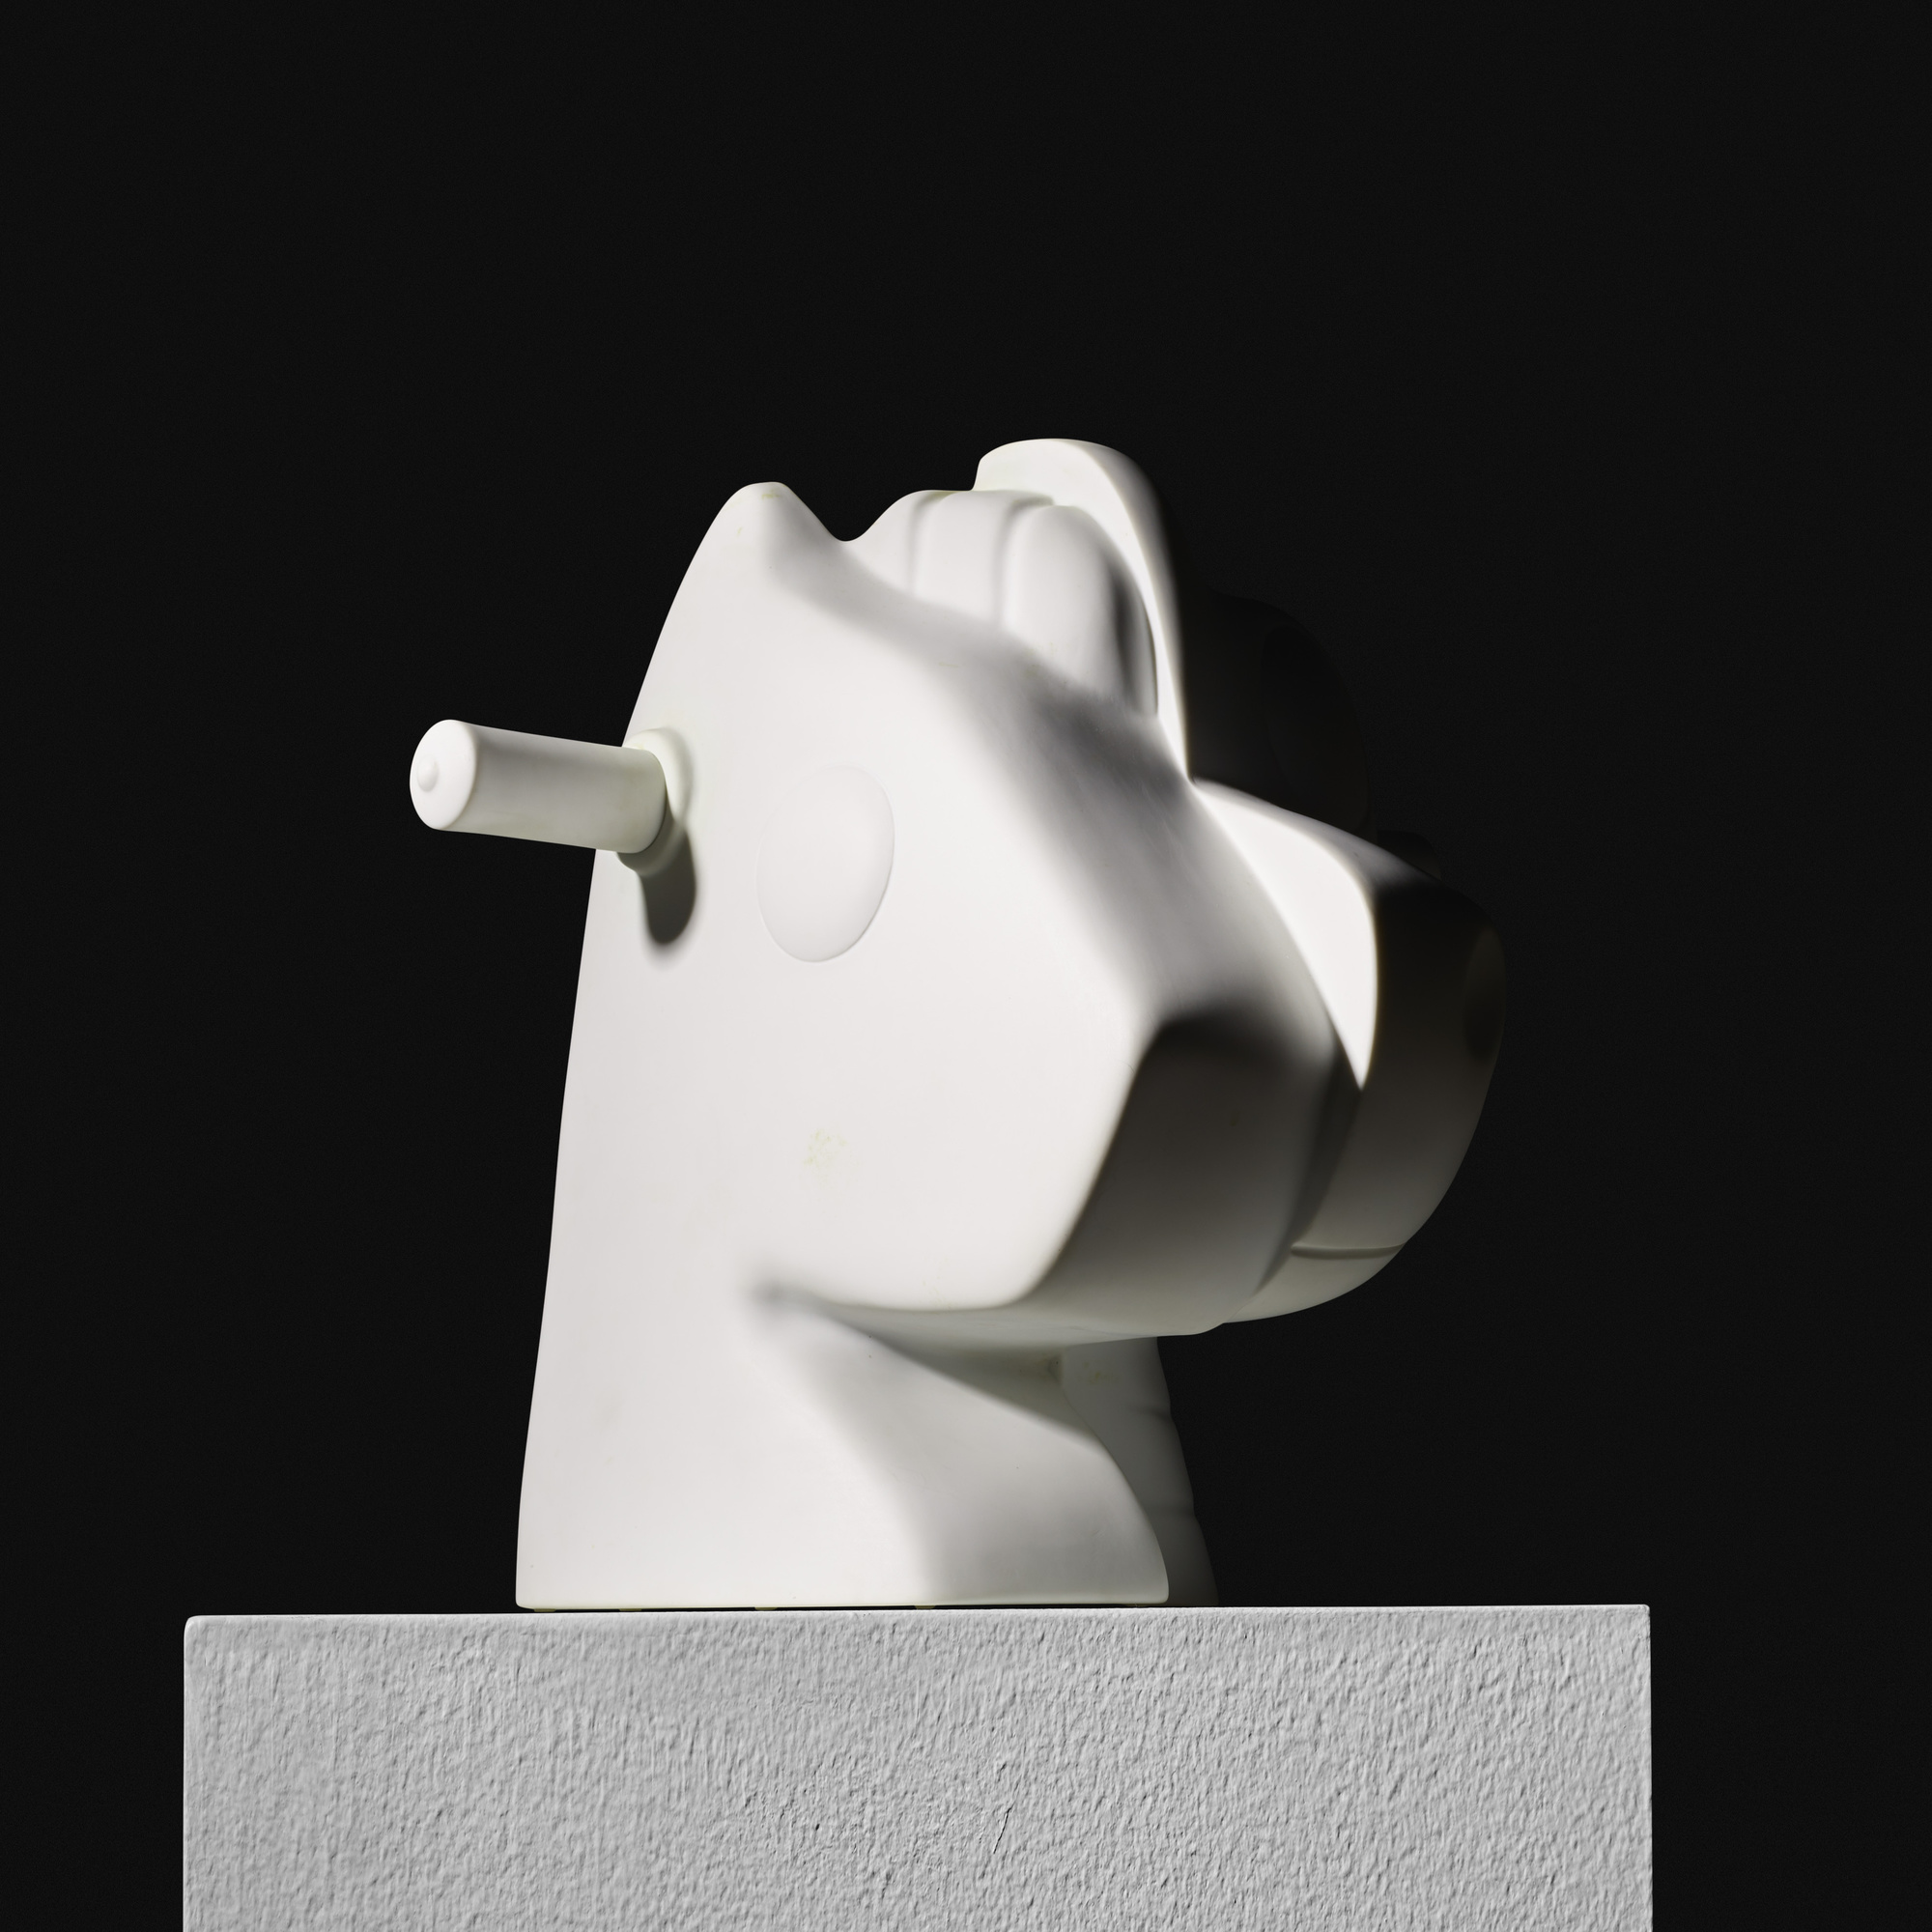 226: Jeff Koons / Split Rocker (vase) (1 of 3)